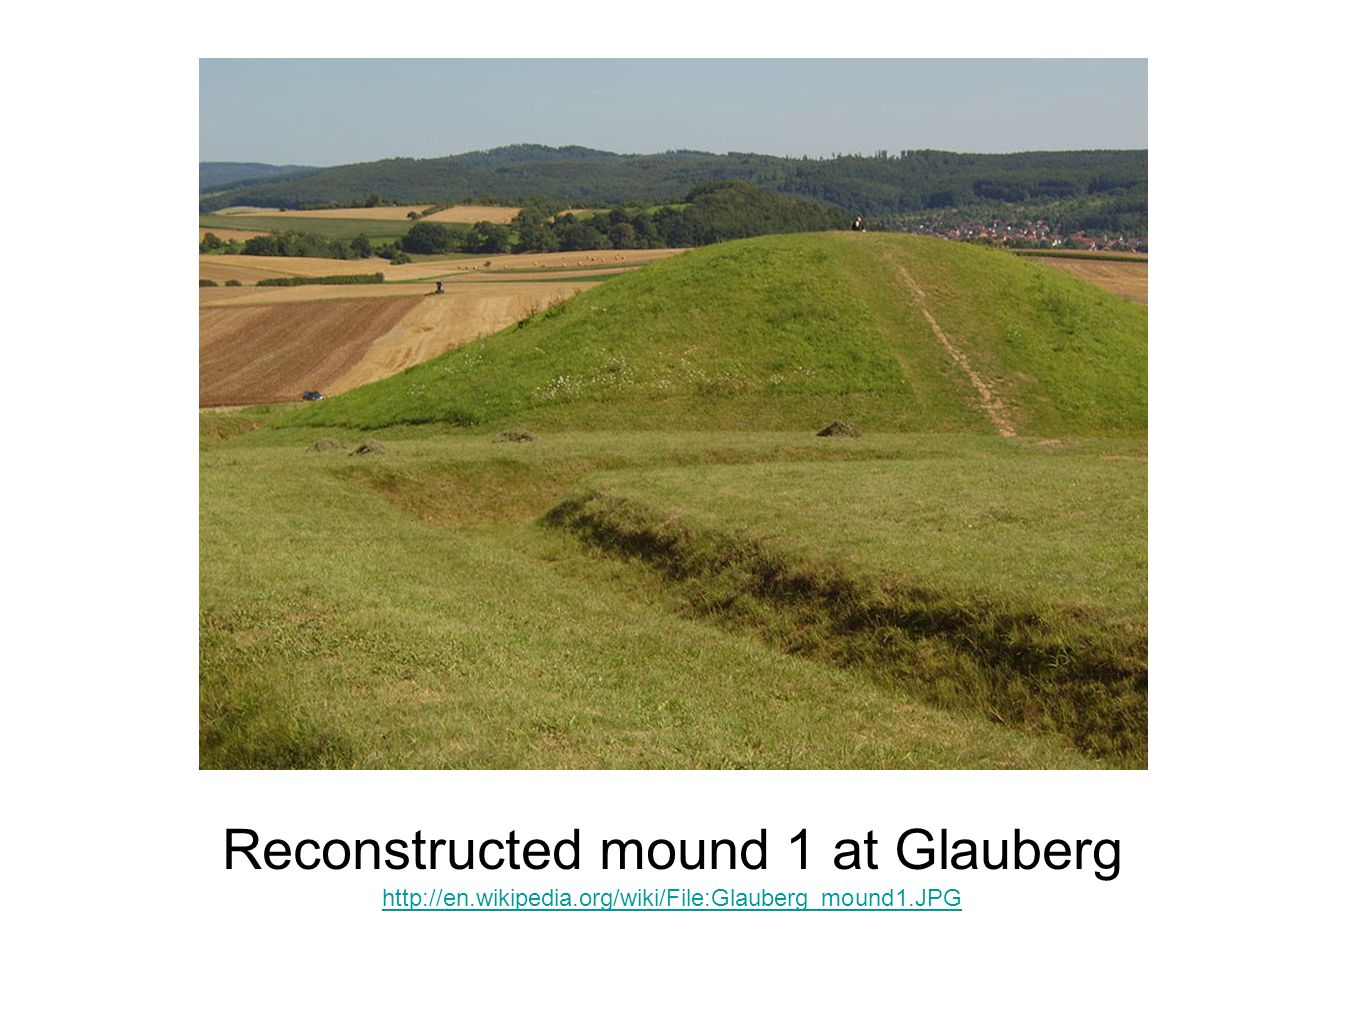 Reconstructed mound 1 at Glauberg http://en.wikipedia.org/wiki/File:Glauberg_mound1.JPG